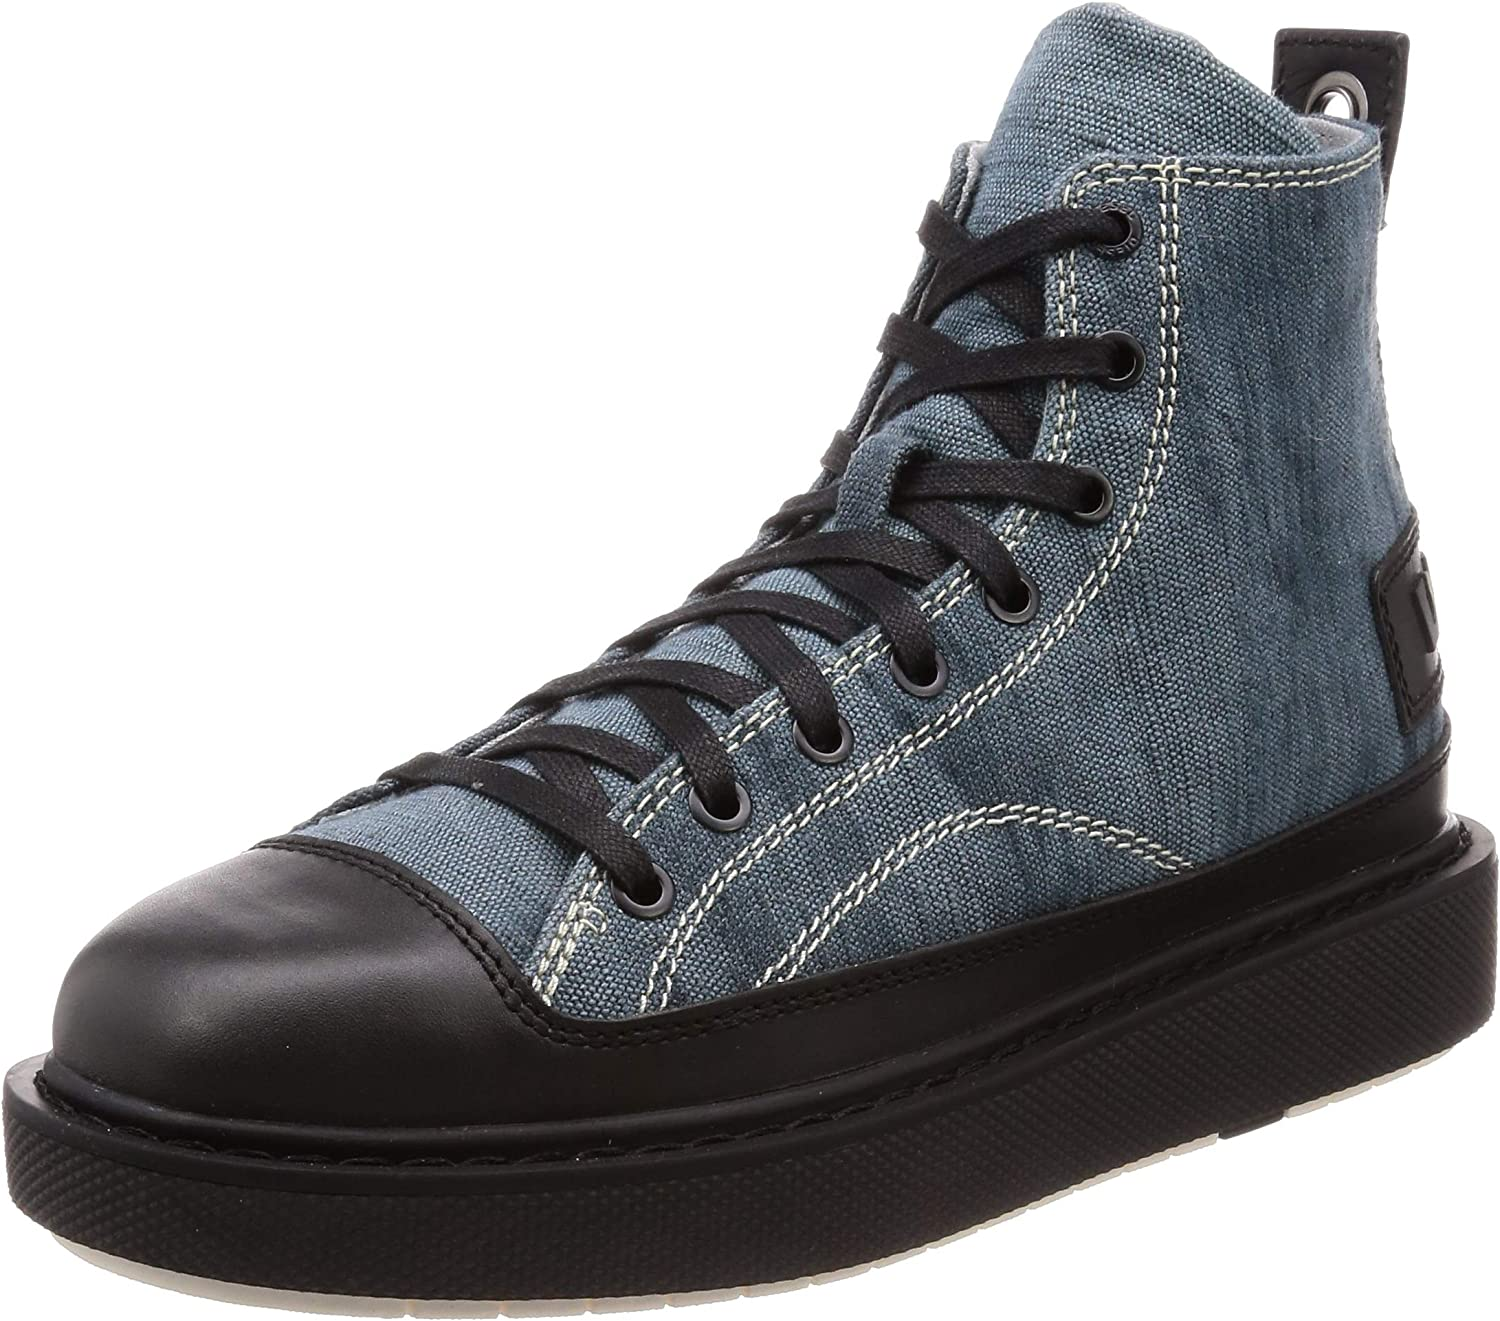 Diesel Men's H-cage Dbb-Ankle Boot Fashion